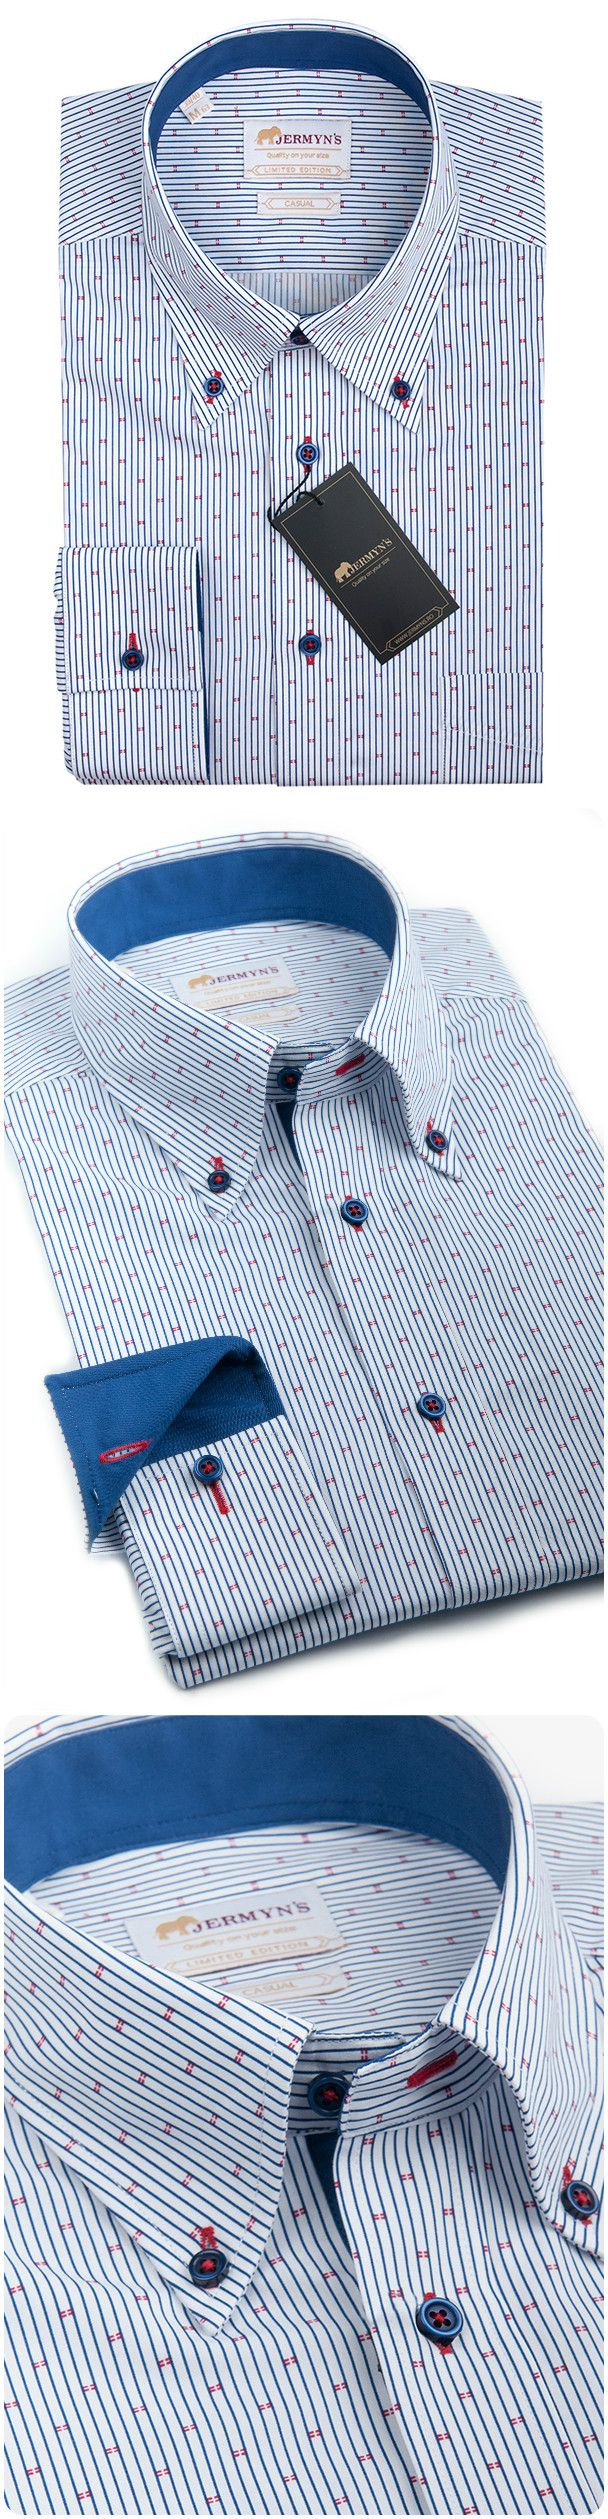 Jermyn's Men Shirts